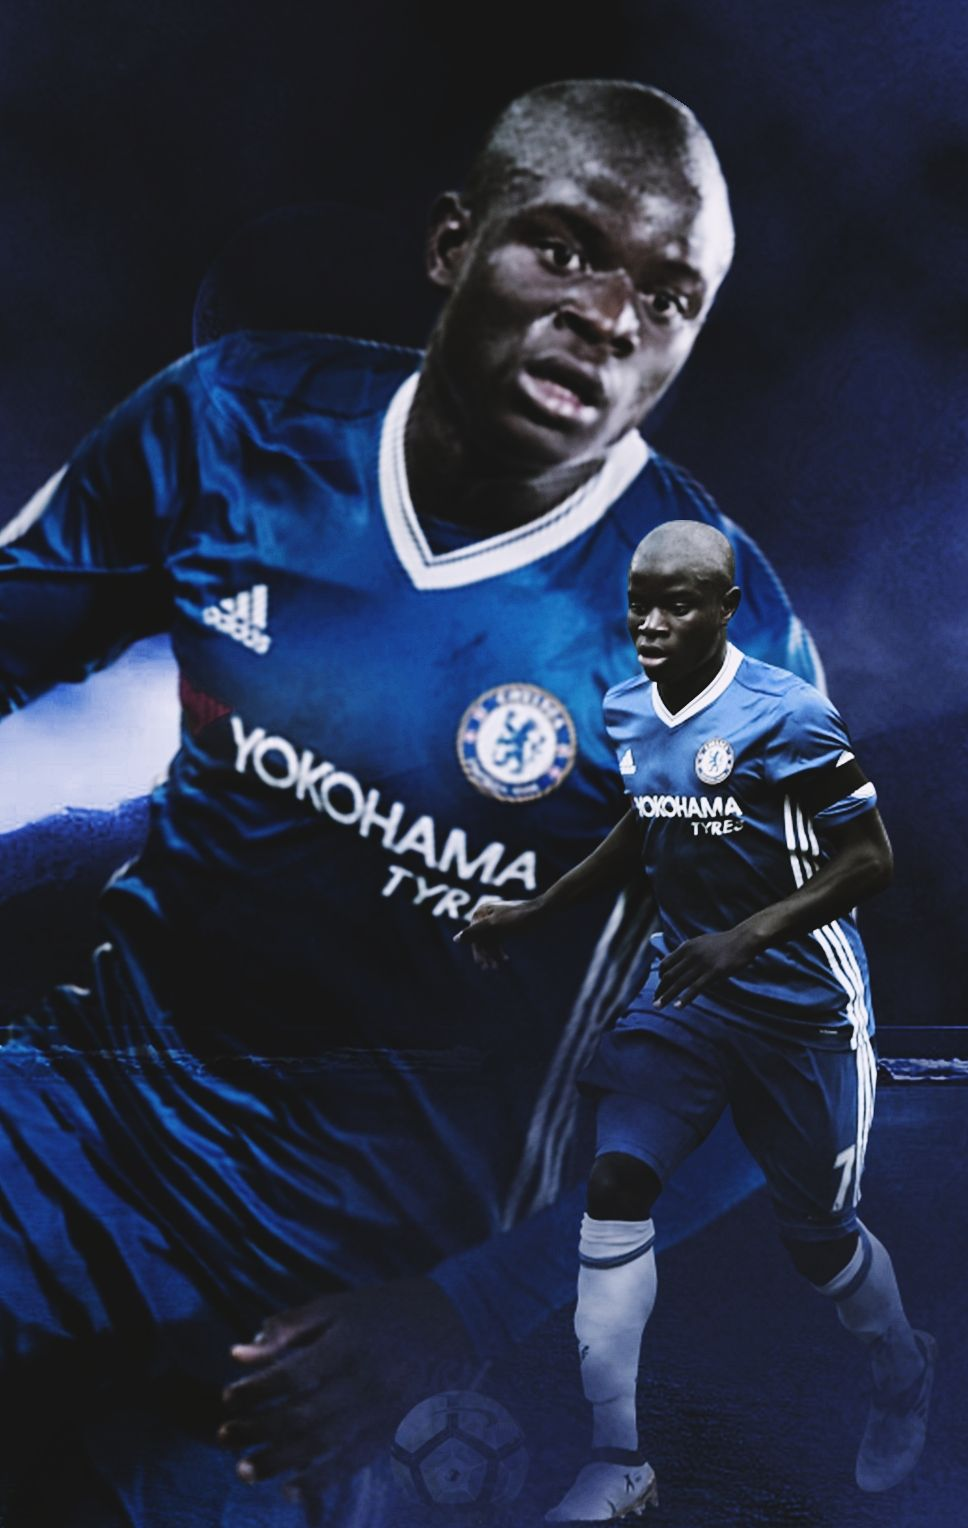 Ngolo kante Sports Wallpapers, Chelsea Fc, Sports Art, Football Players, Soccer,